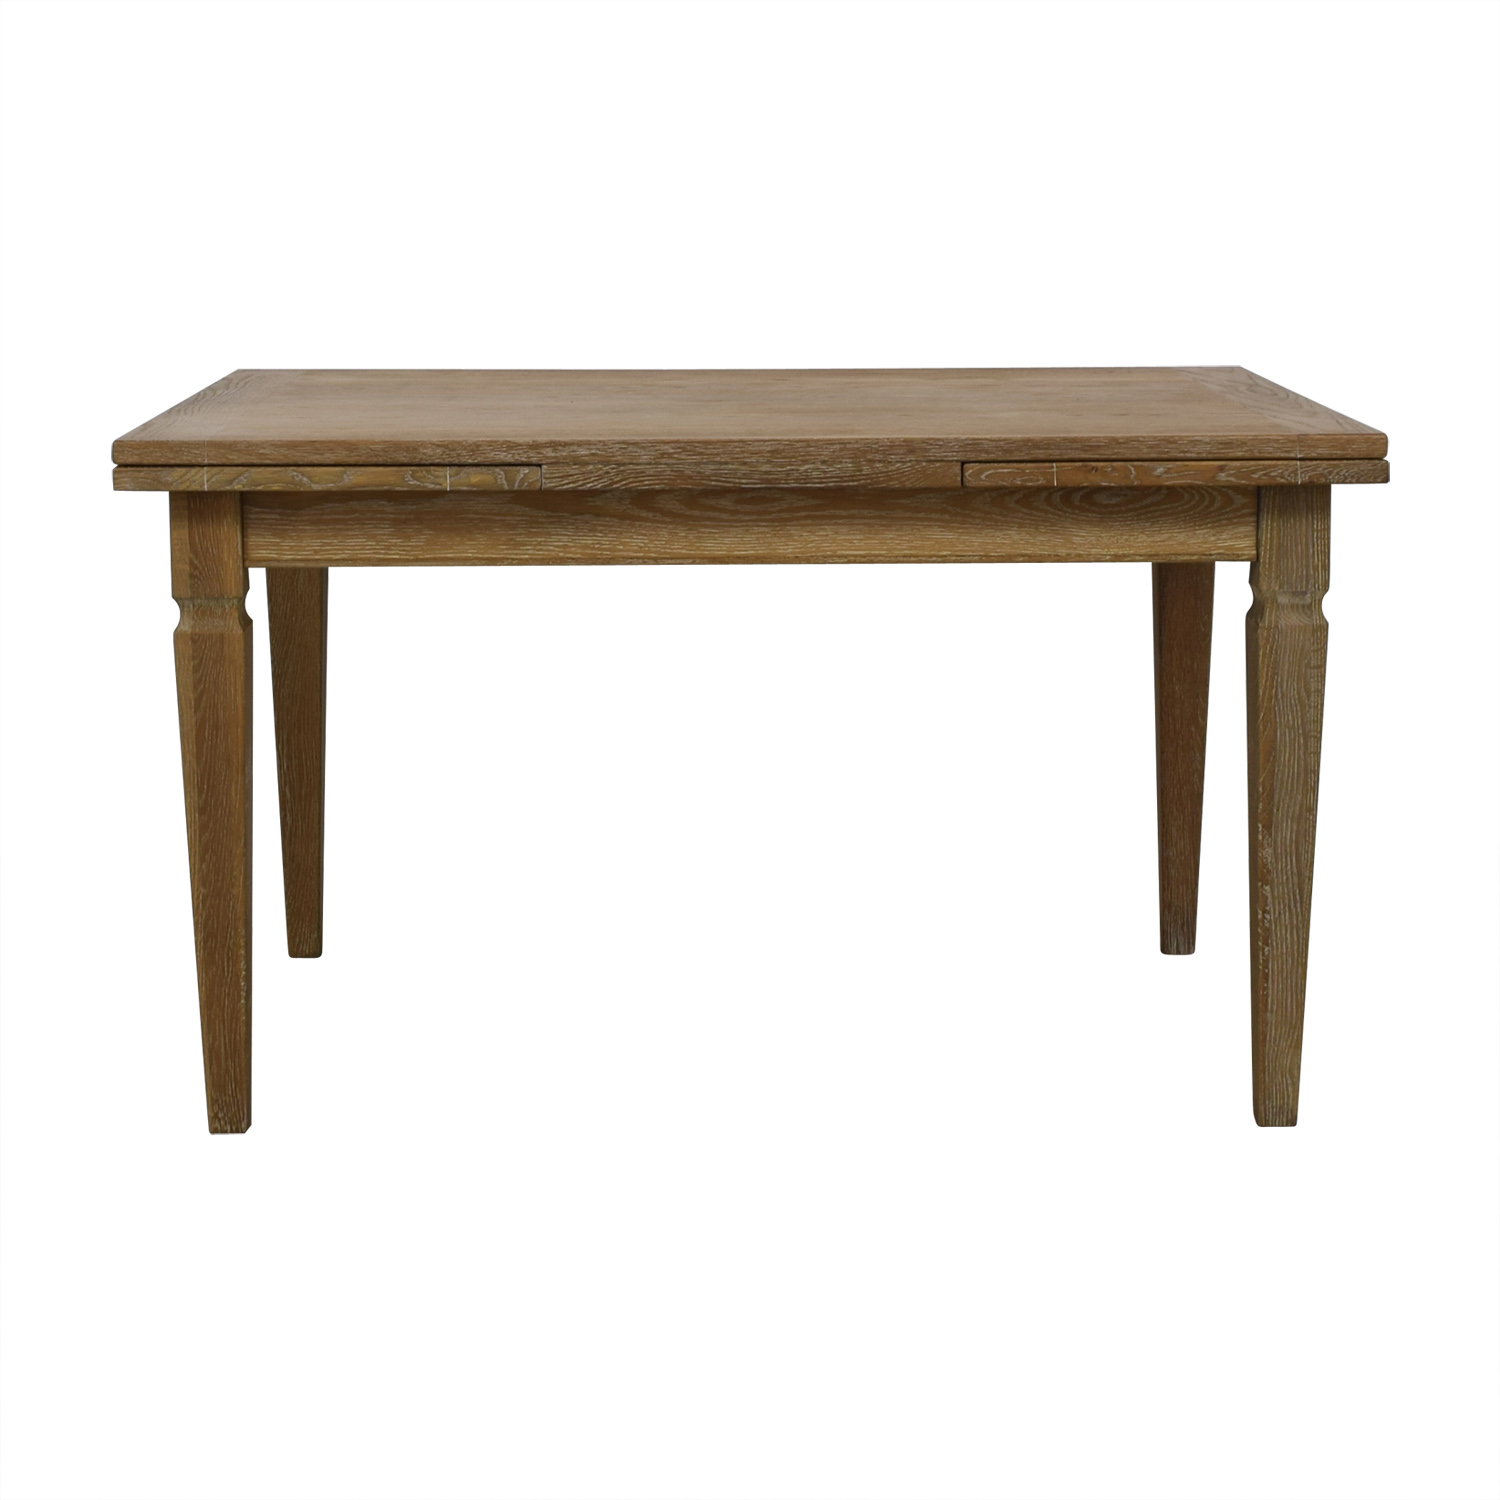 Arhaus Arhaus Luciano Dining Table nyc